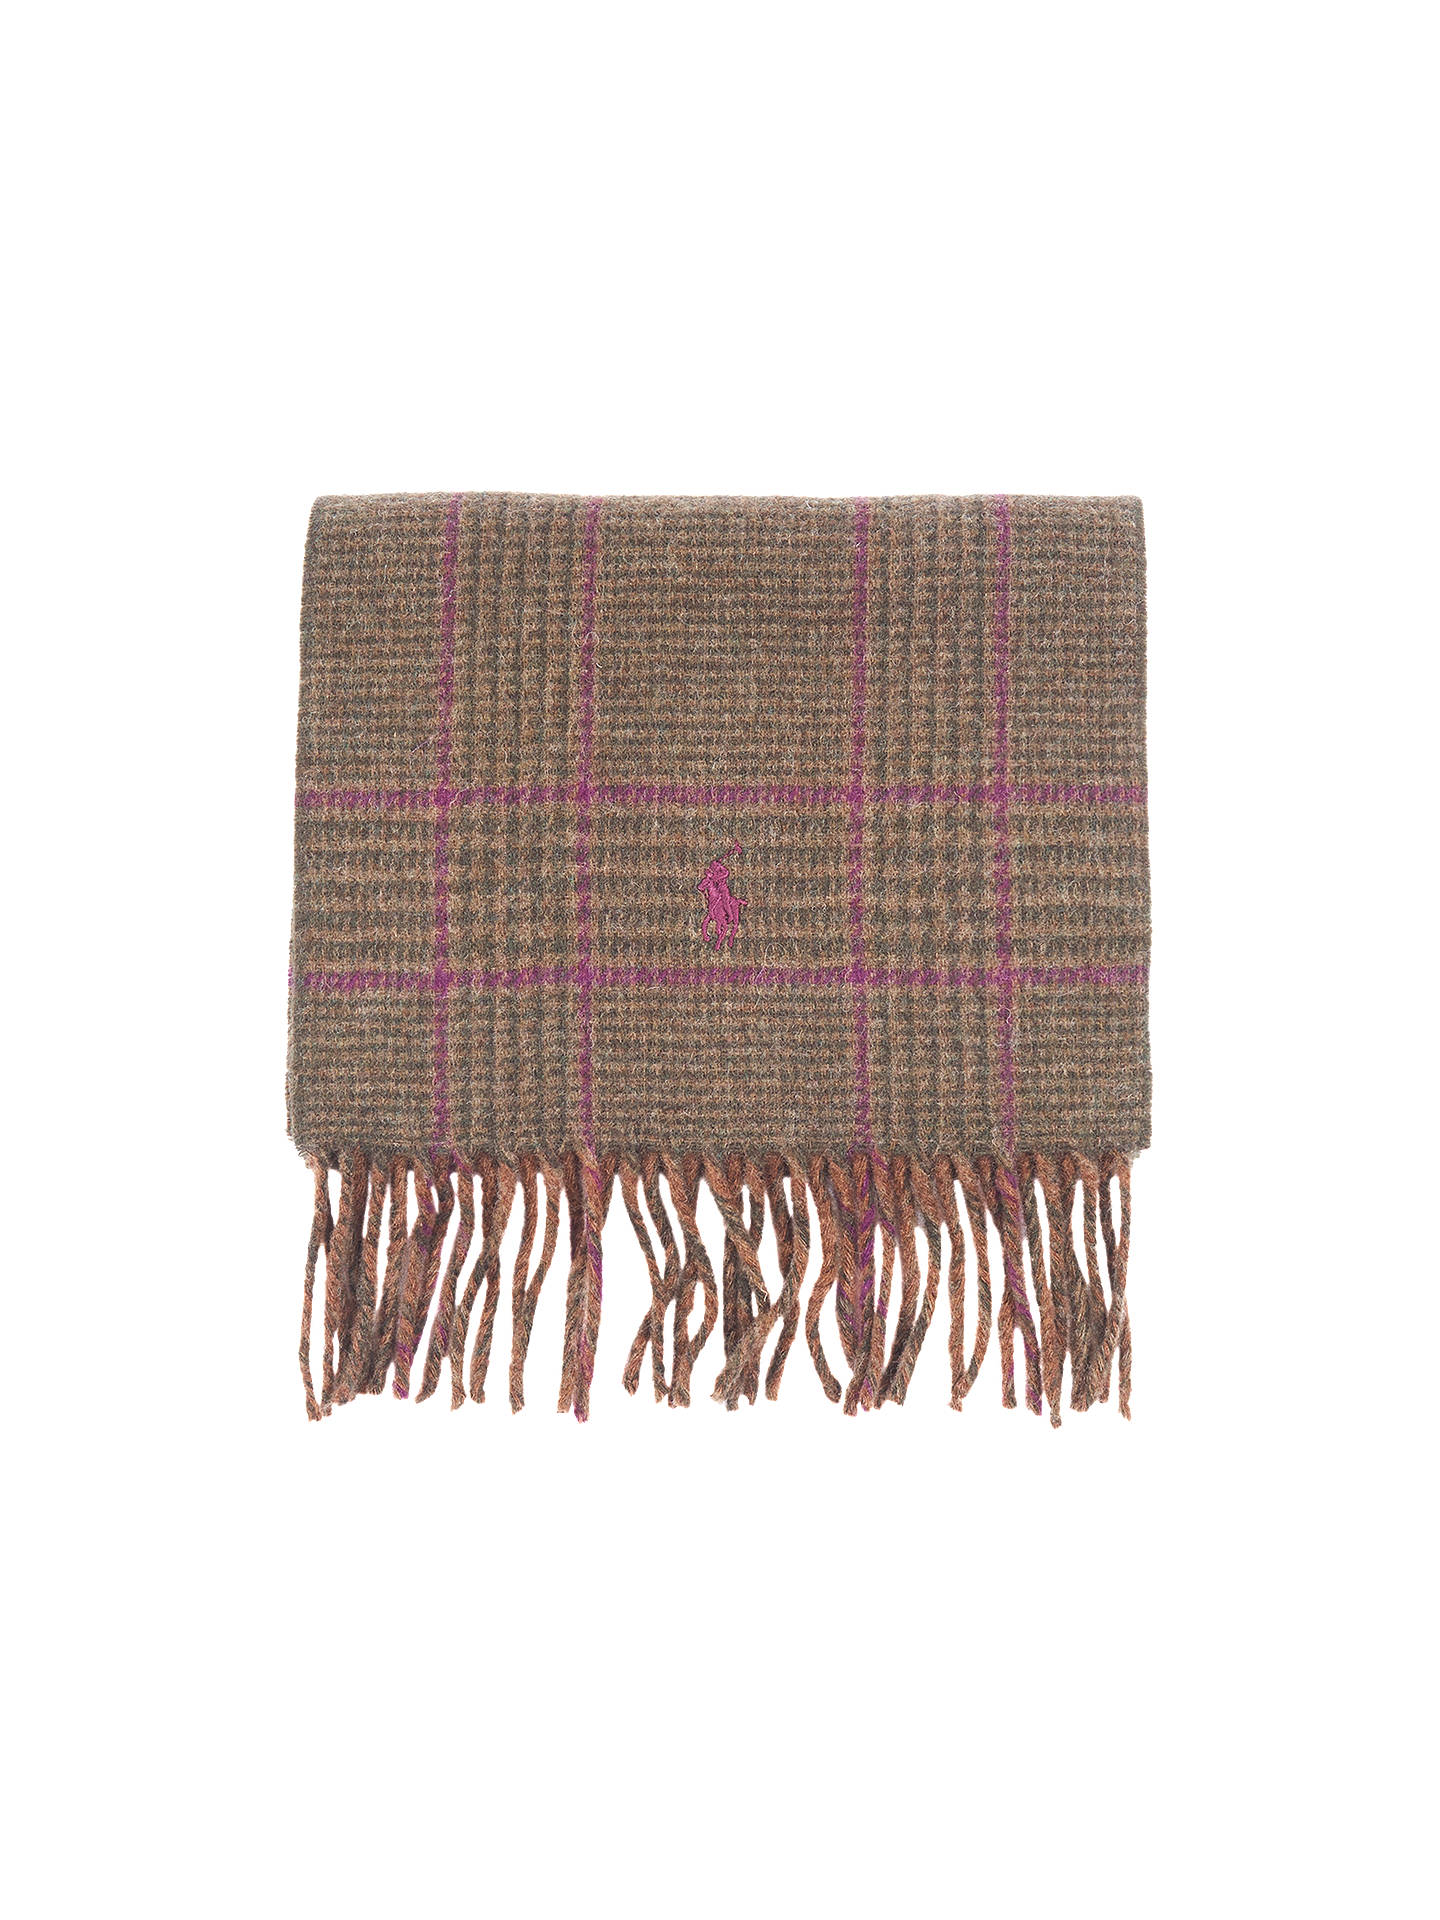 BuyPolo Ralph Lauren Reversible Check Scarf, One Size, Green/Pink Online at johnlewis.com